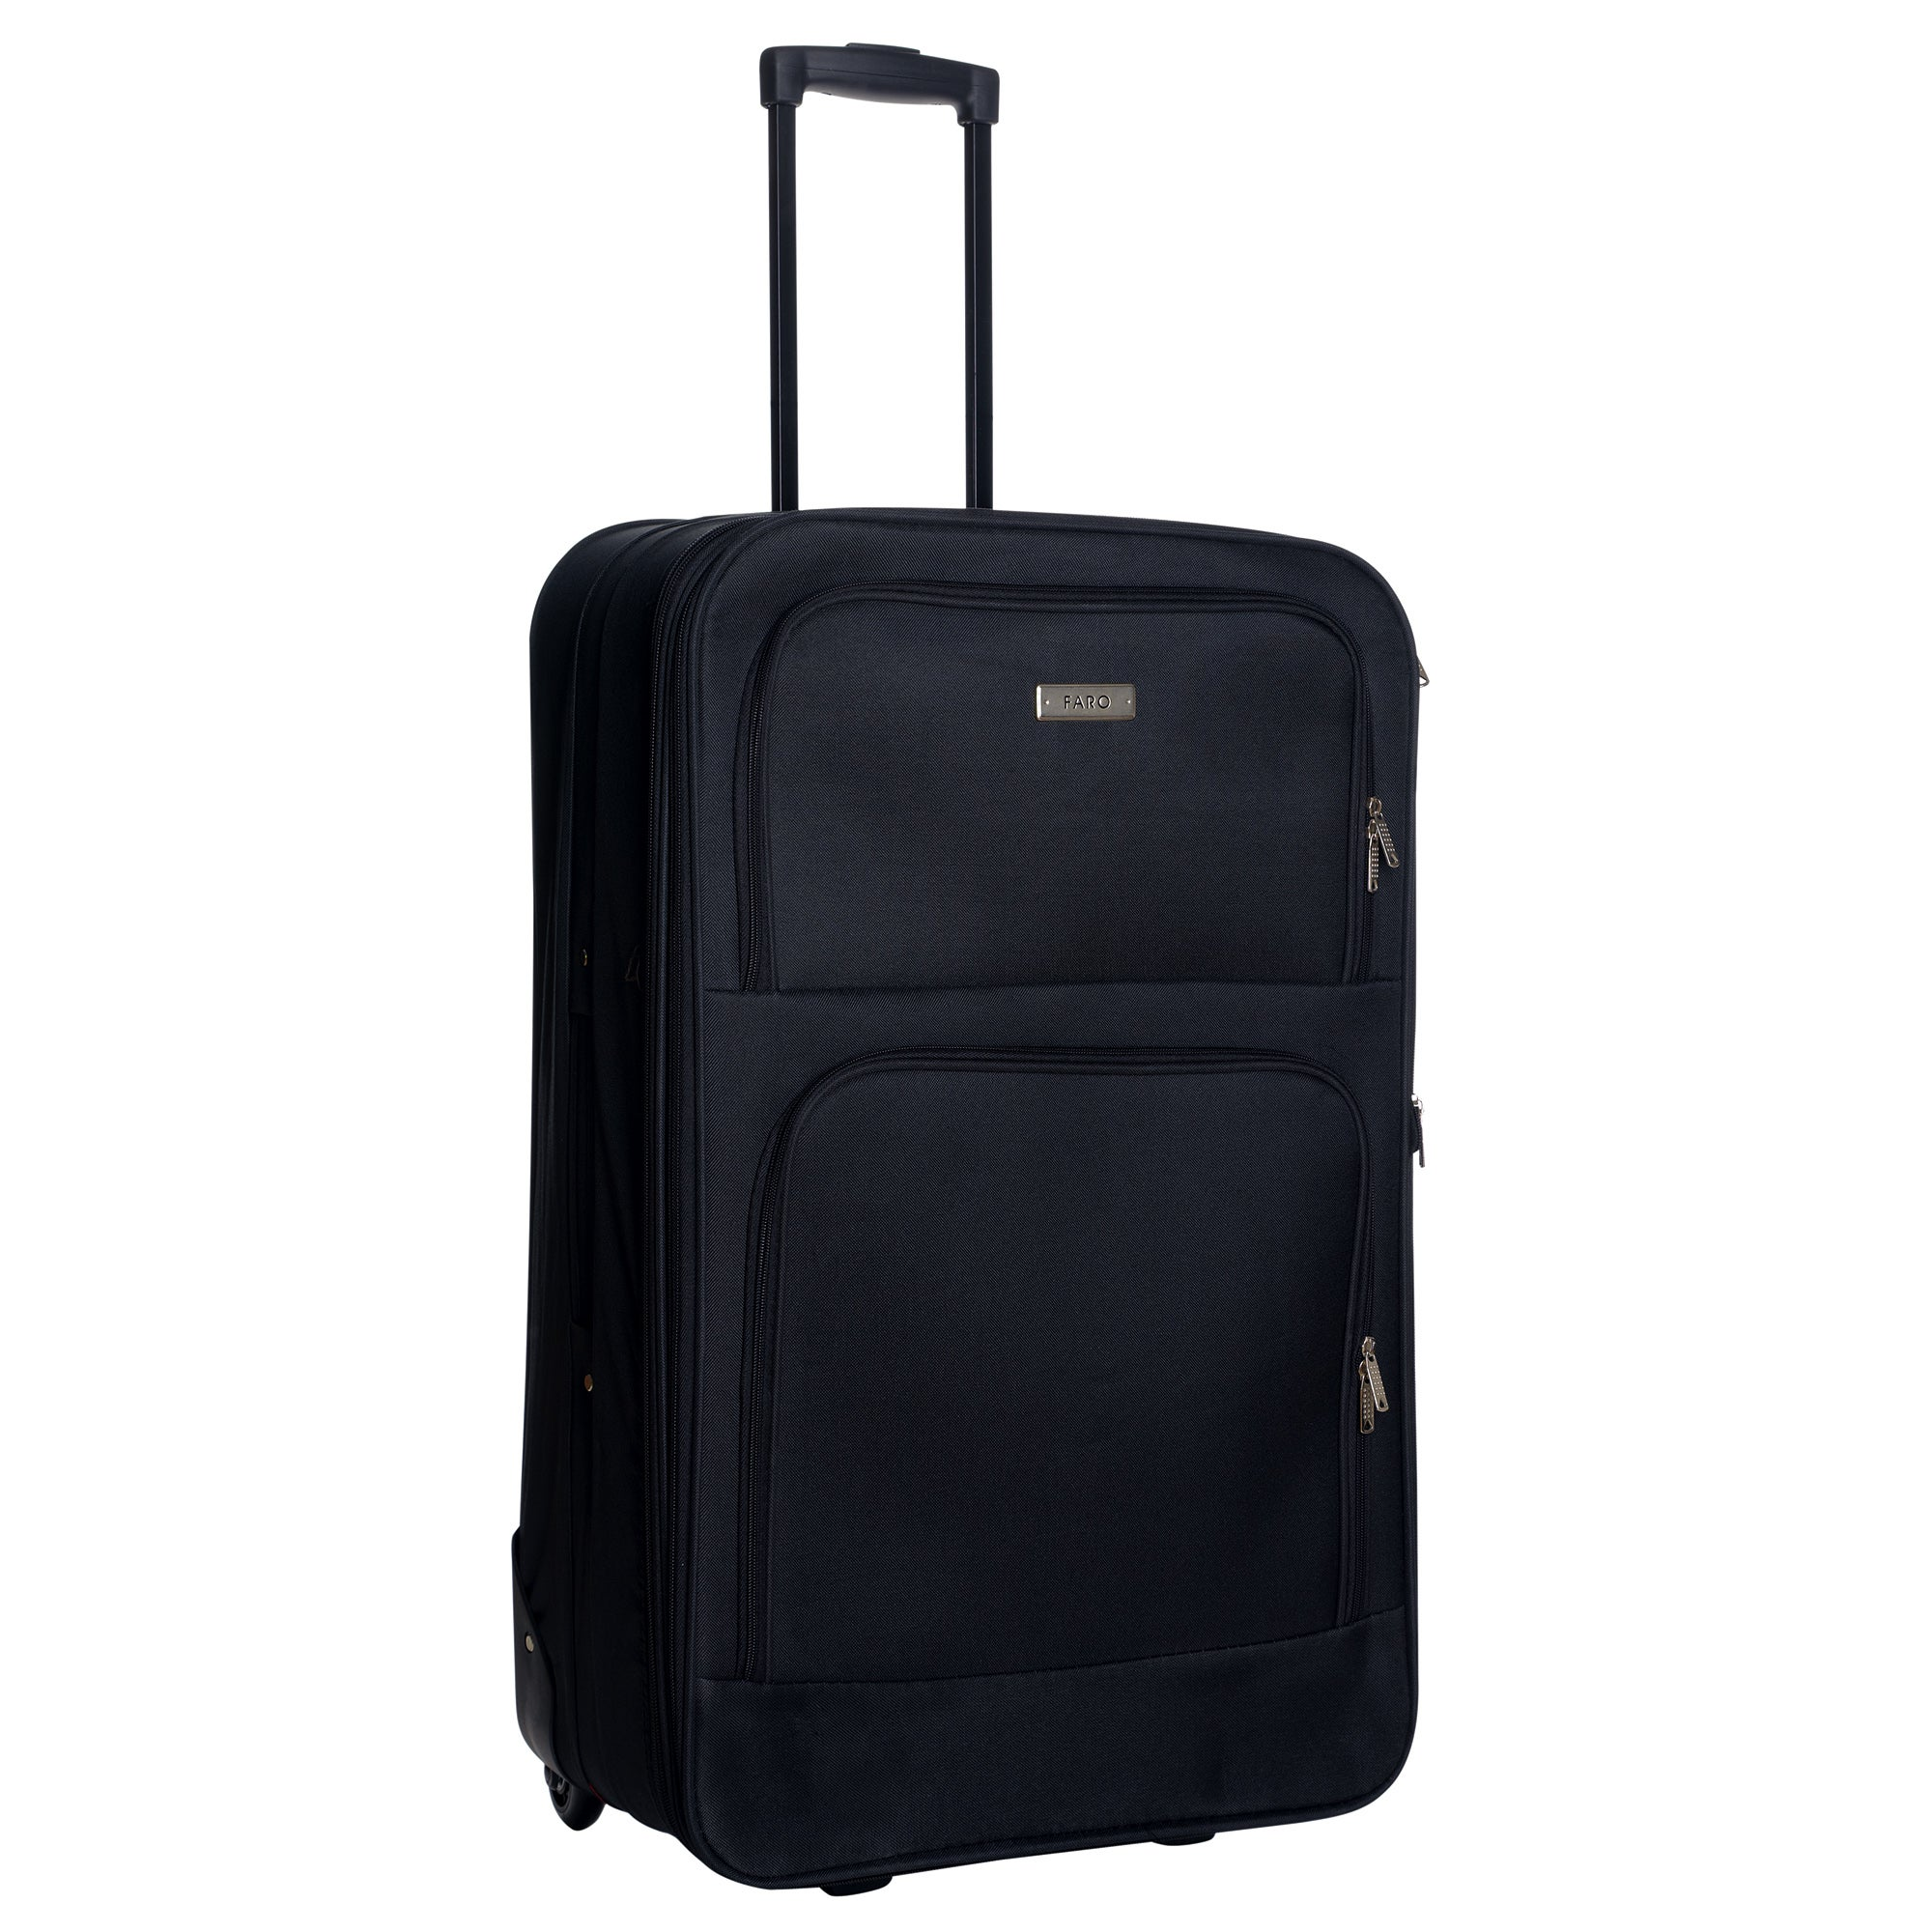 Faro Black 28 Inch Large Family Case